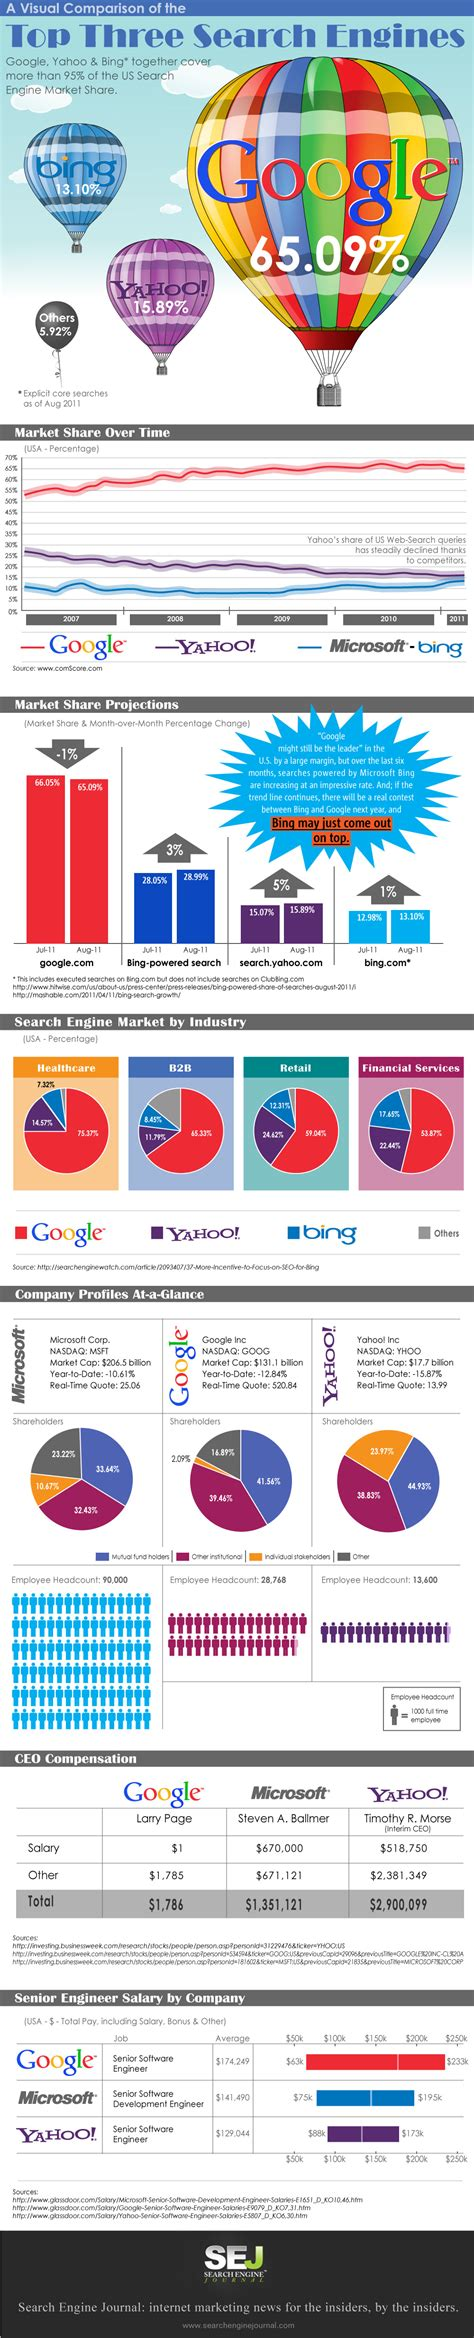 Top Search Engines by Infographic The Top Three Us Search Engines